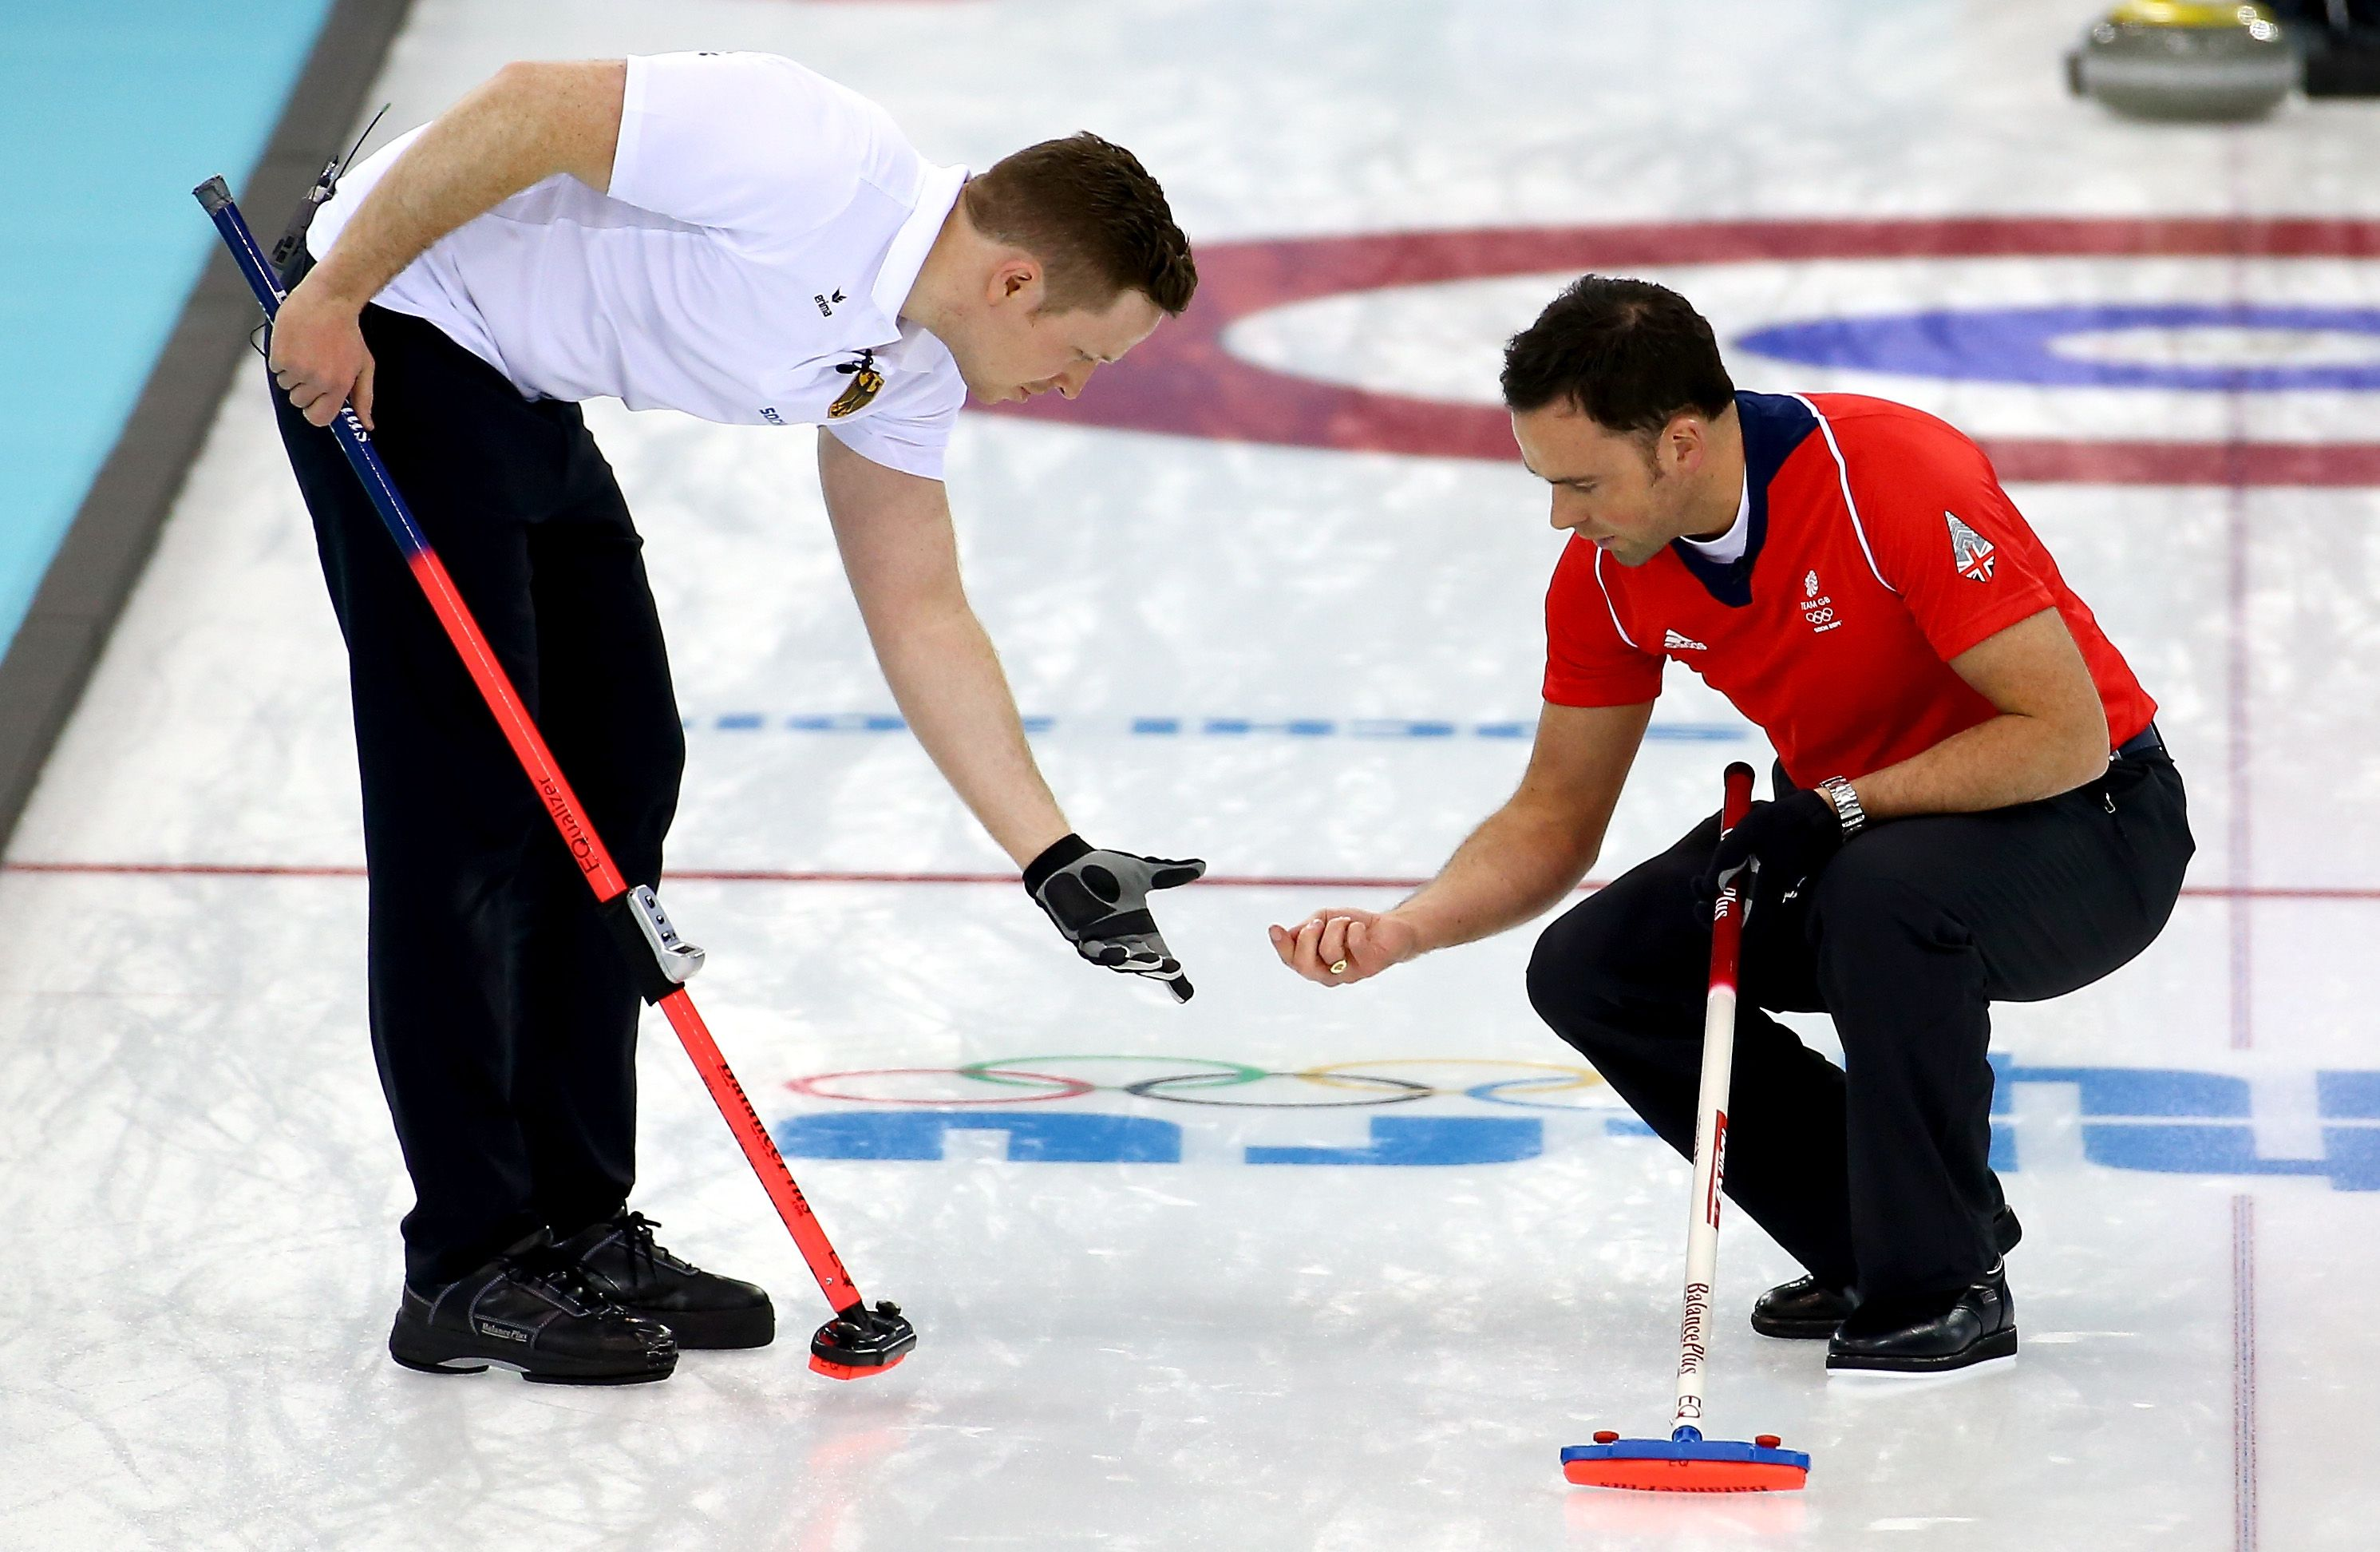 Christopher Bartsch of Germany and David Murdock of Great Britain check the ice in the men's round robin session (c) Getty Images